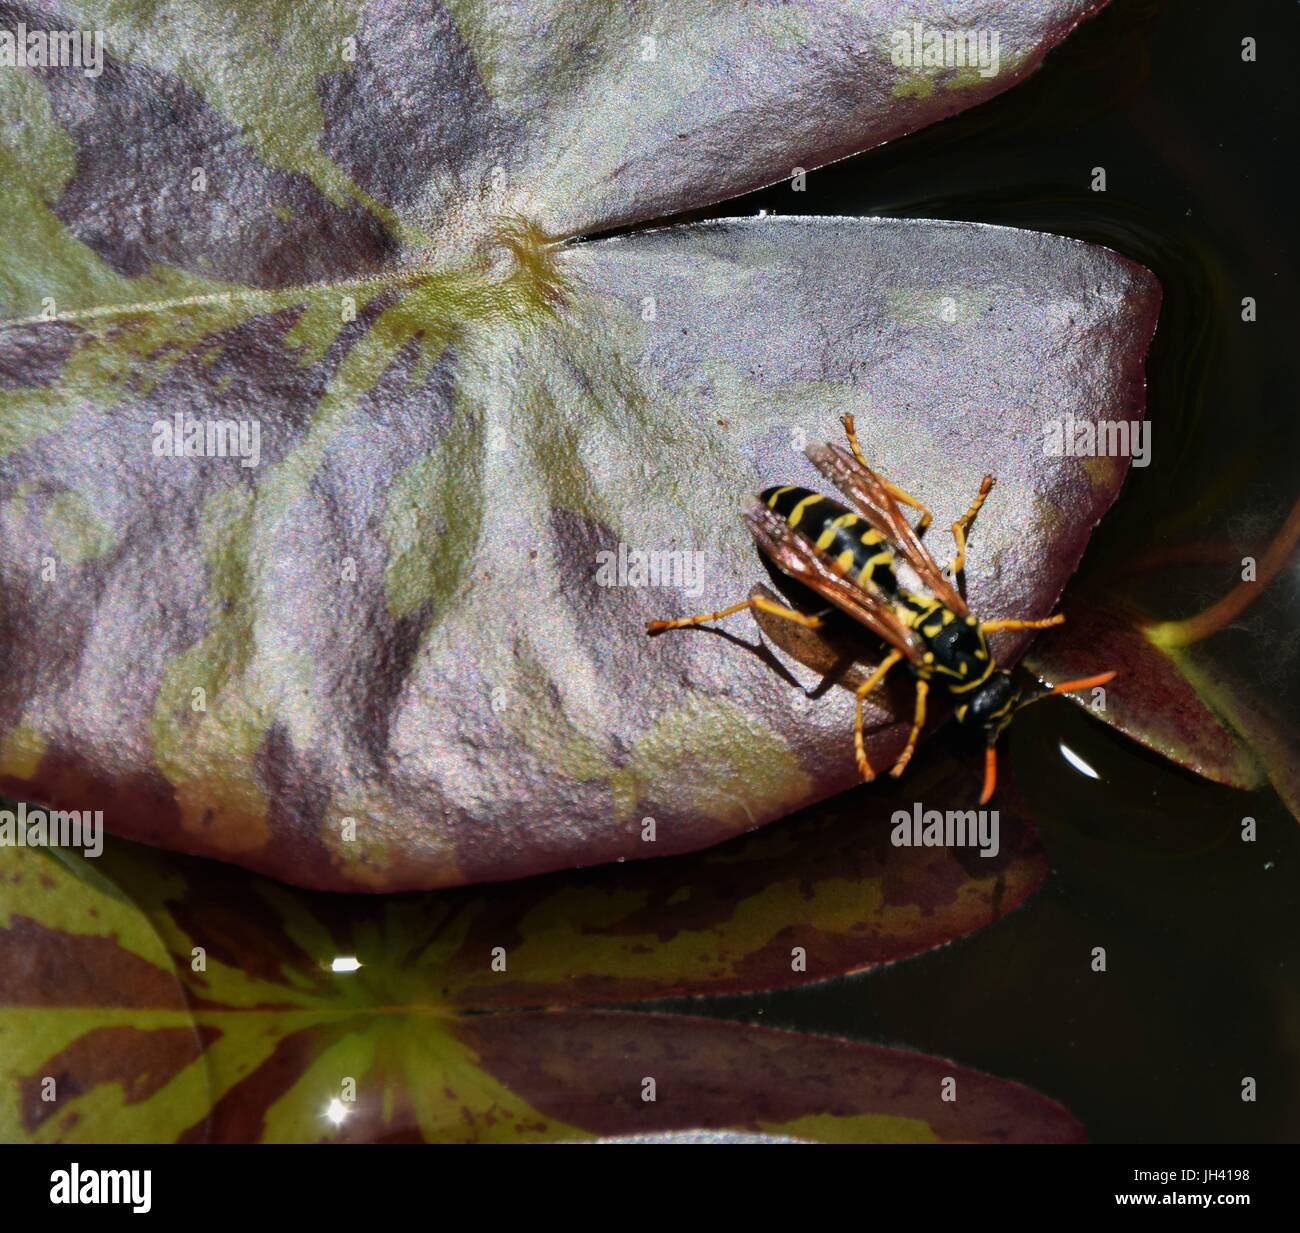 wasp on a leave in a garden Pond, wasp drink water - Stock Image